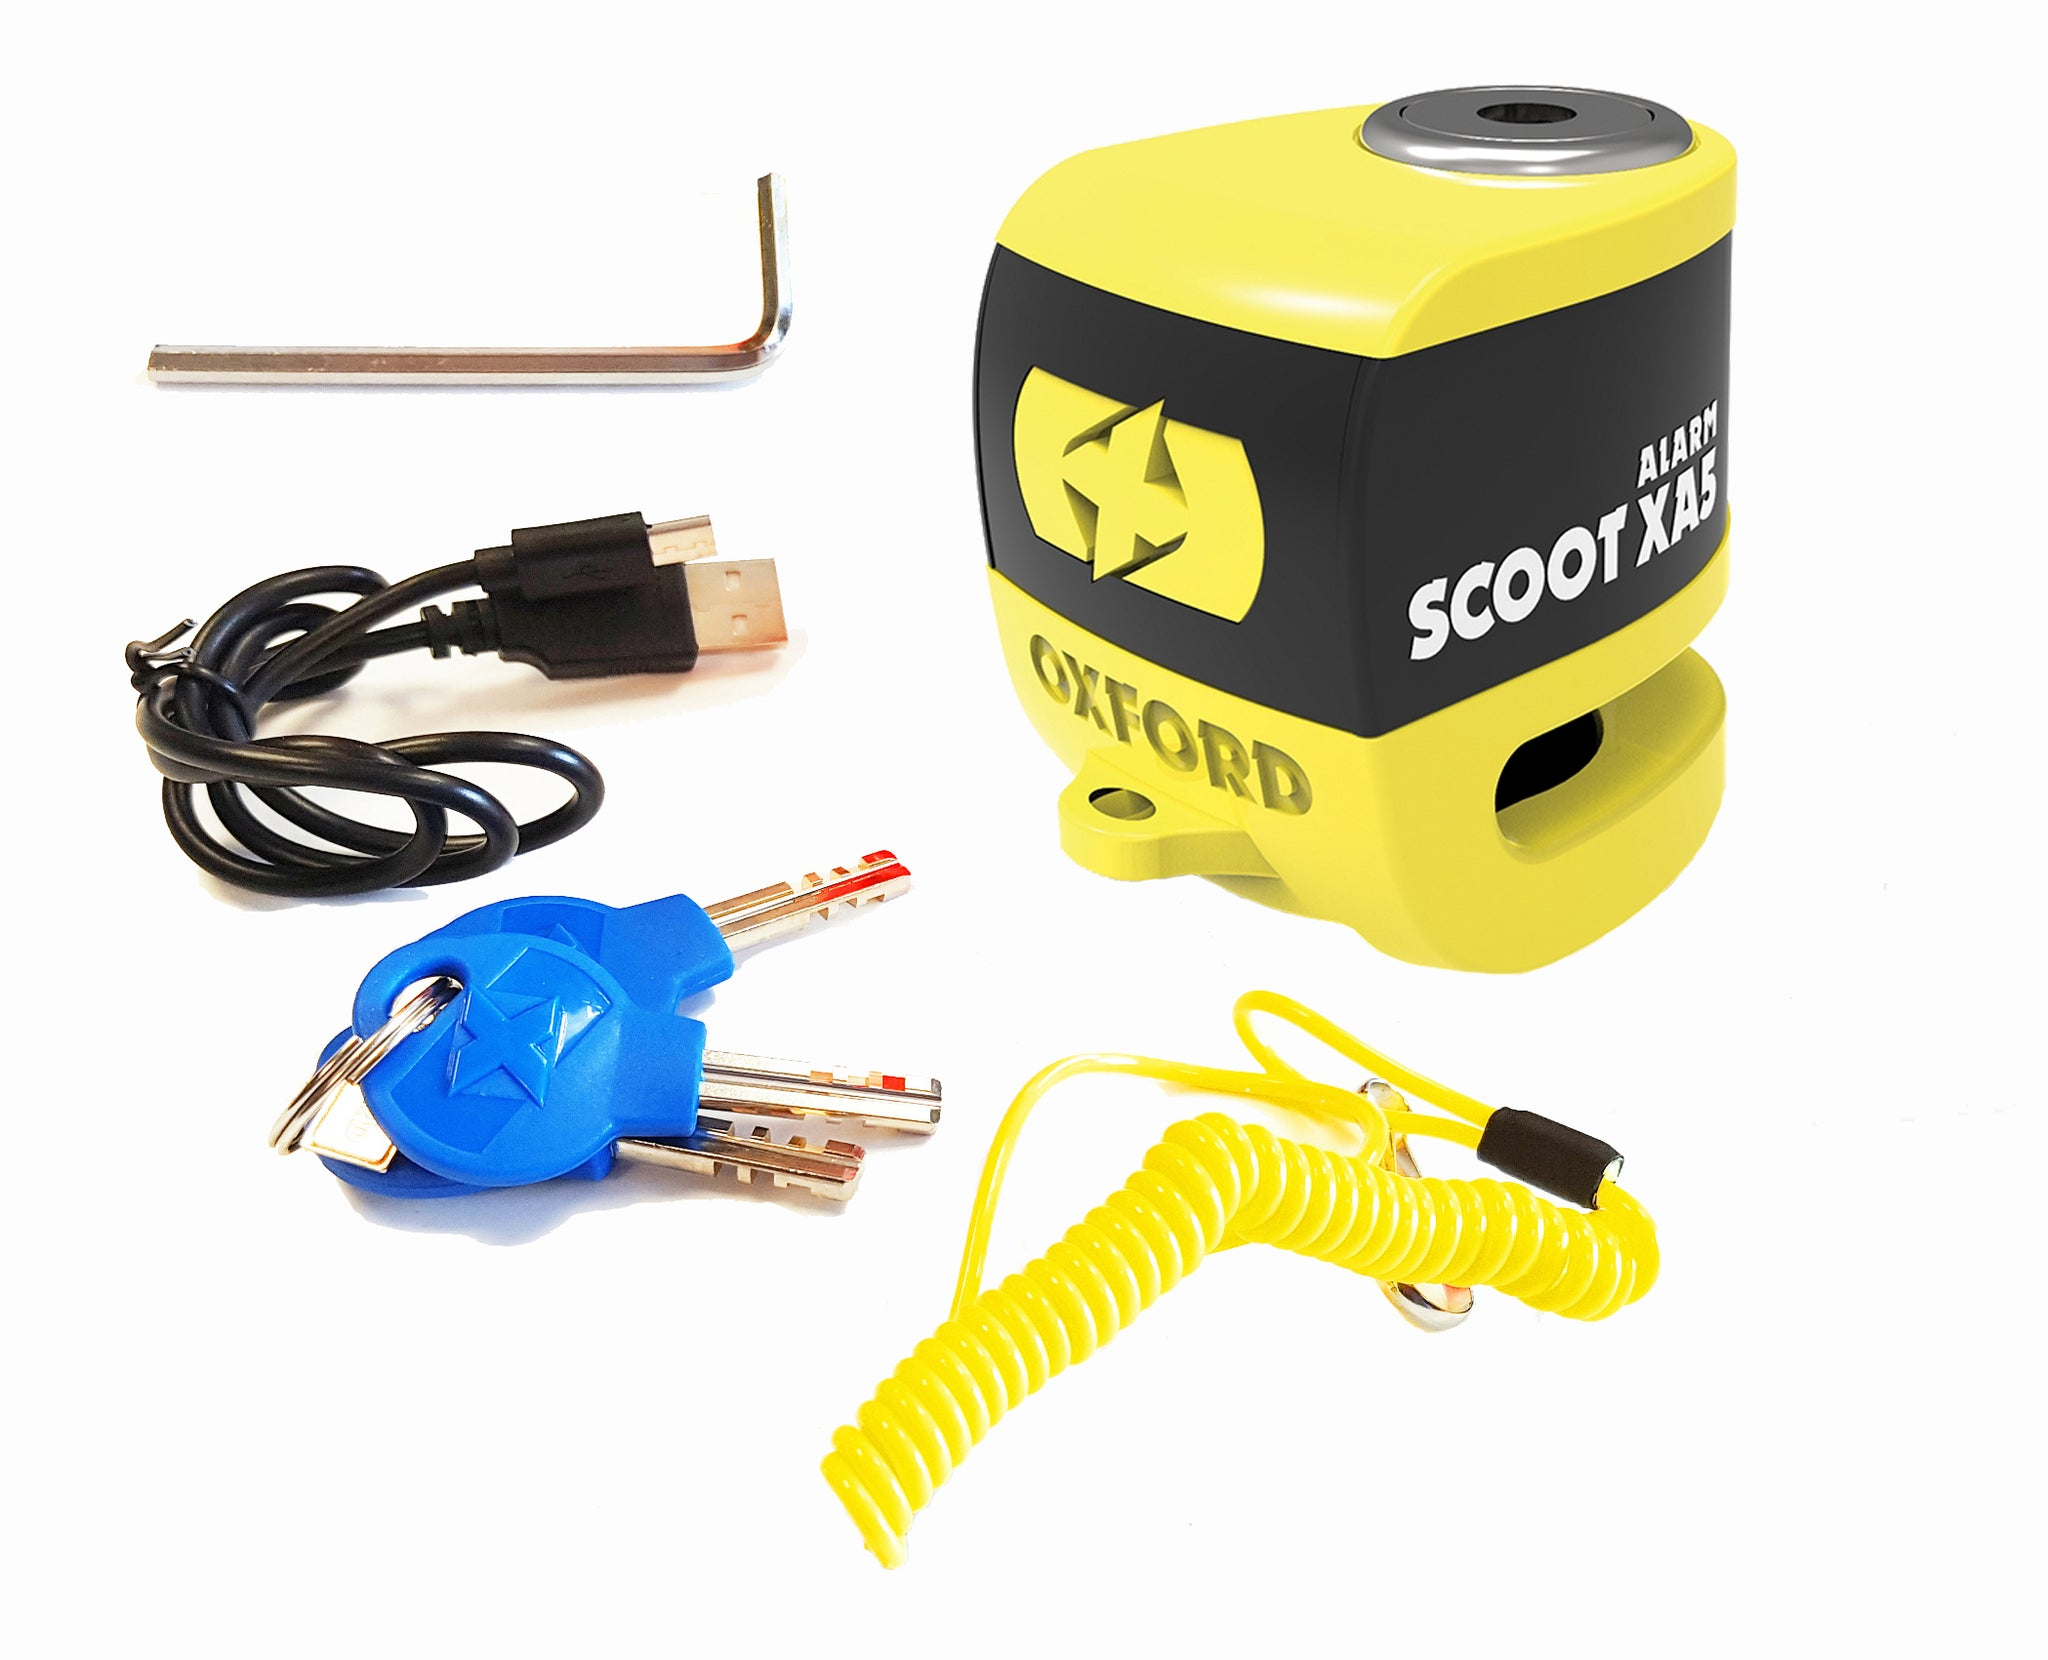 Lexmoto Zsb 125 Oxford SCOOT XA5 LK287 Security Motorbike Yellow Disc Lock